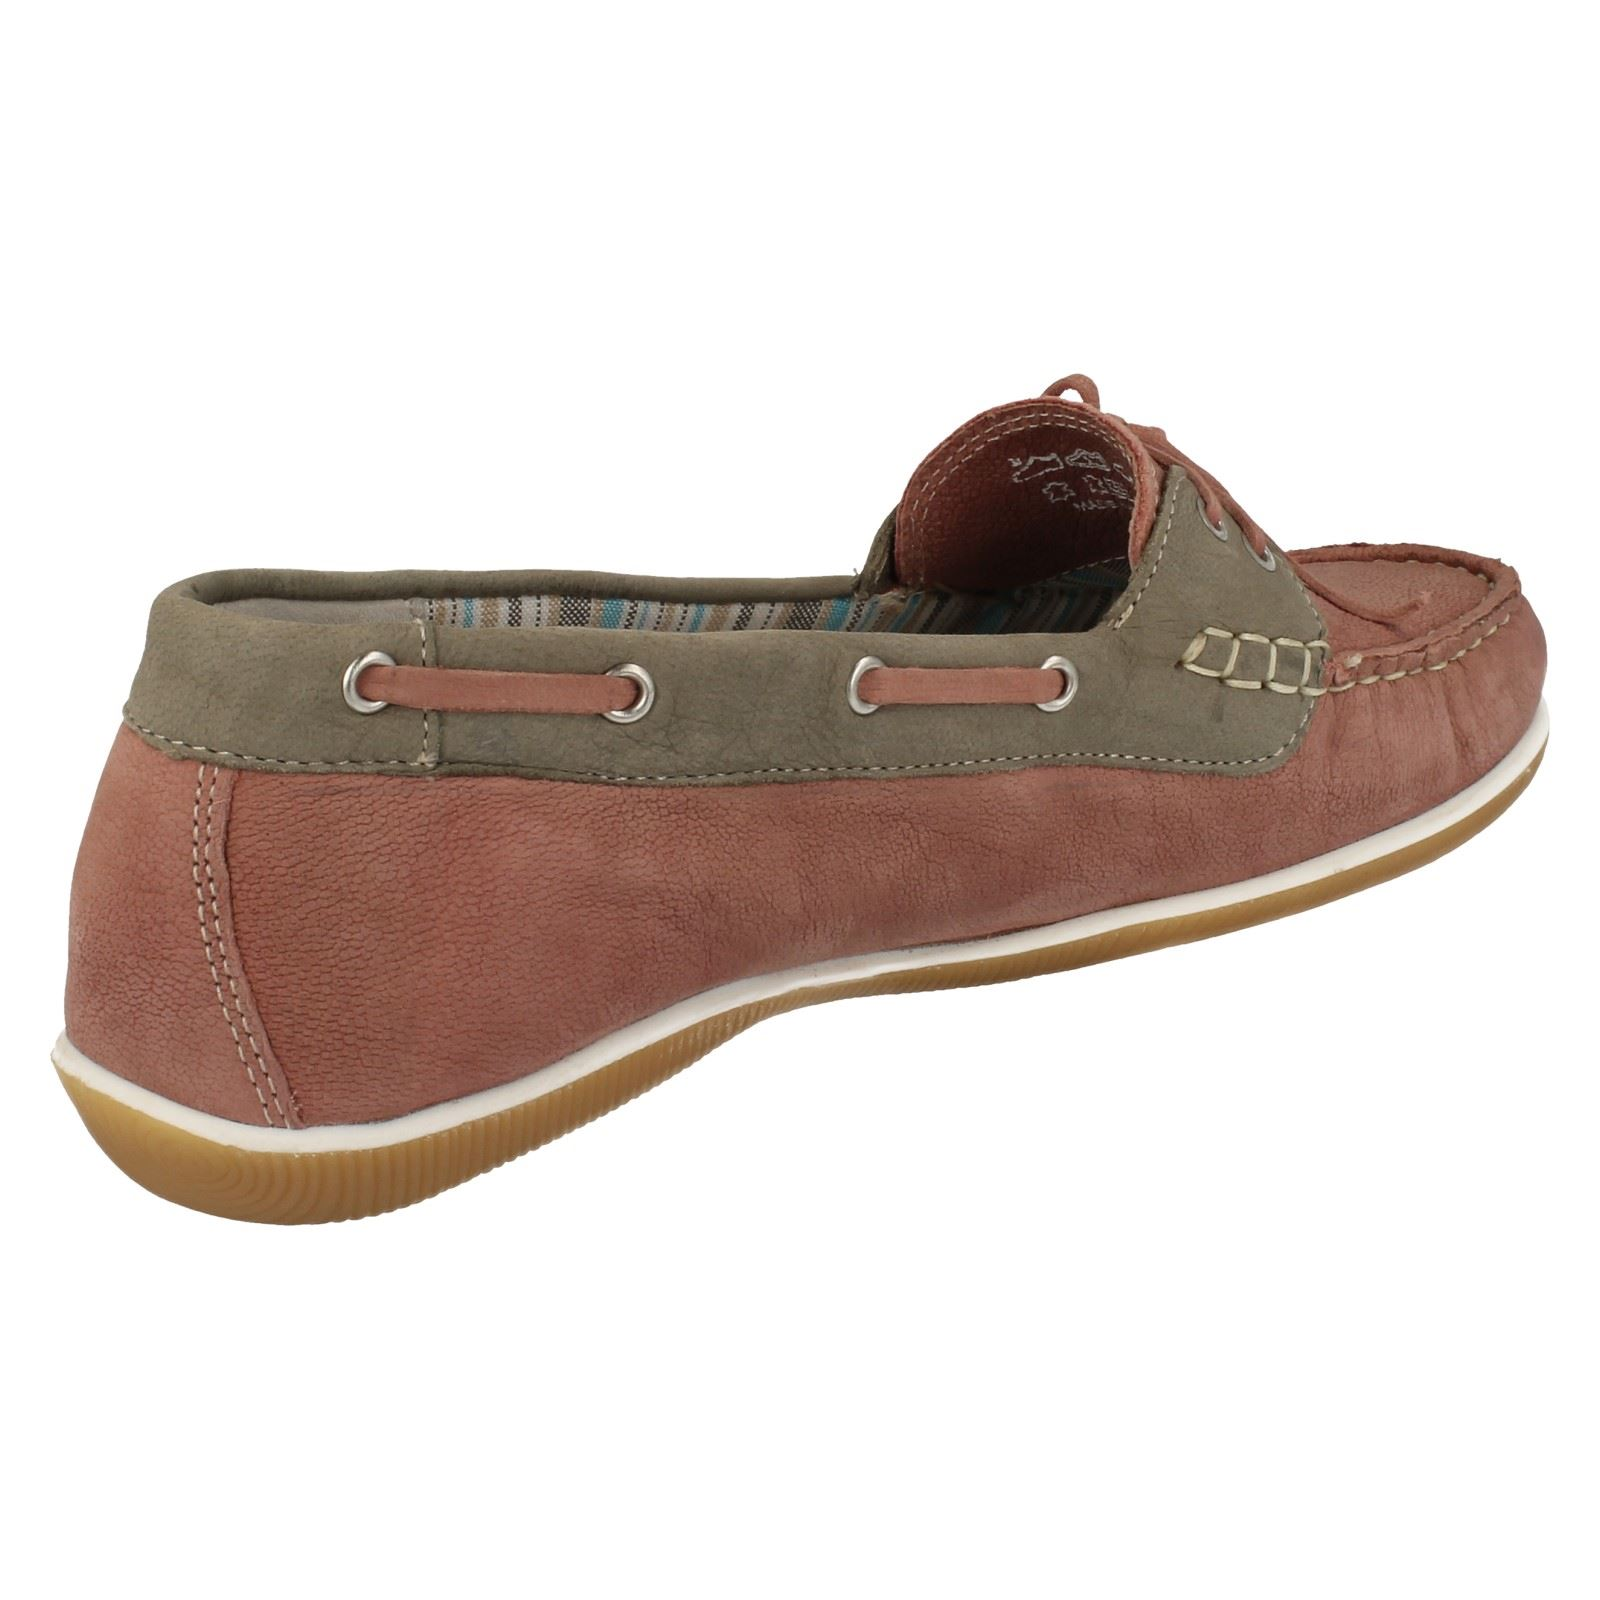 Ladies Padders Marina Moccasin Style shoes shoes shoes 6c044d